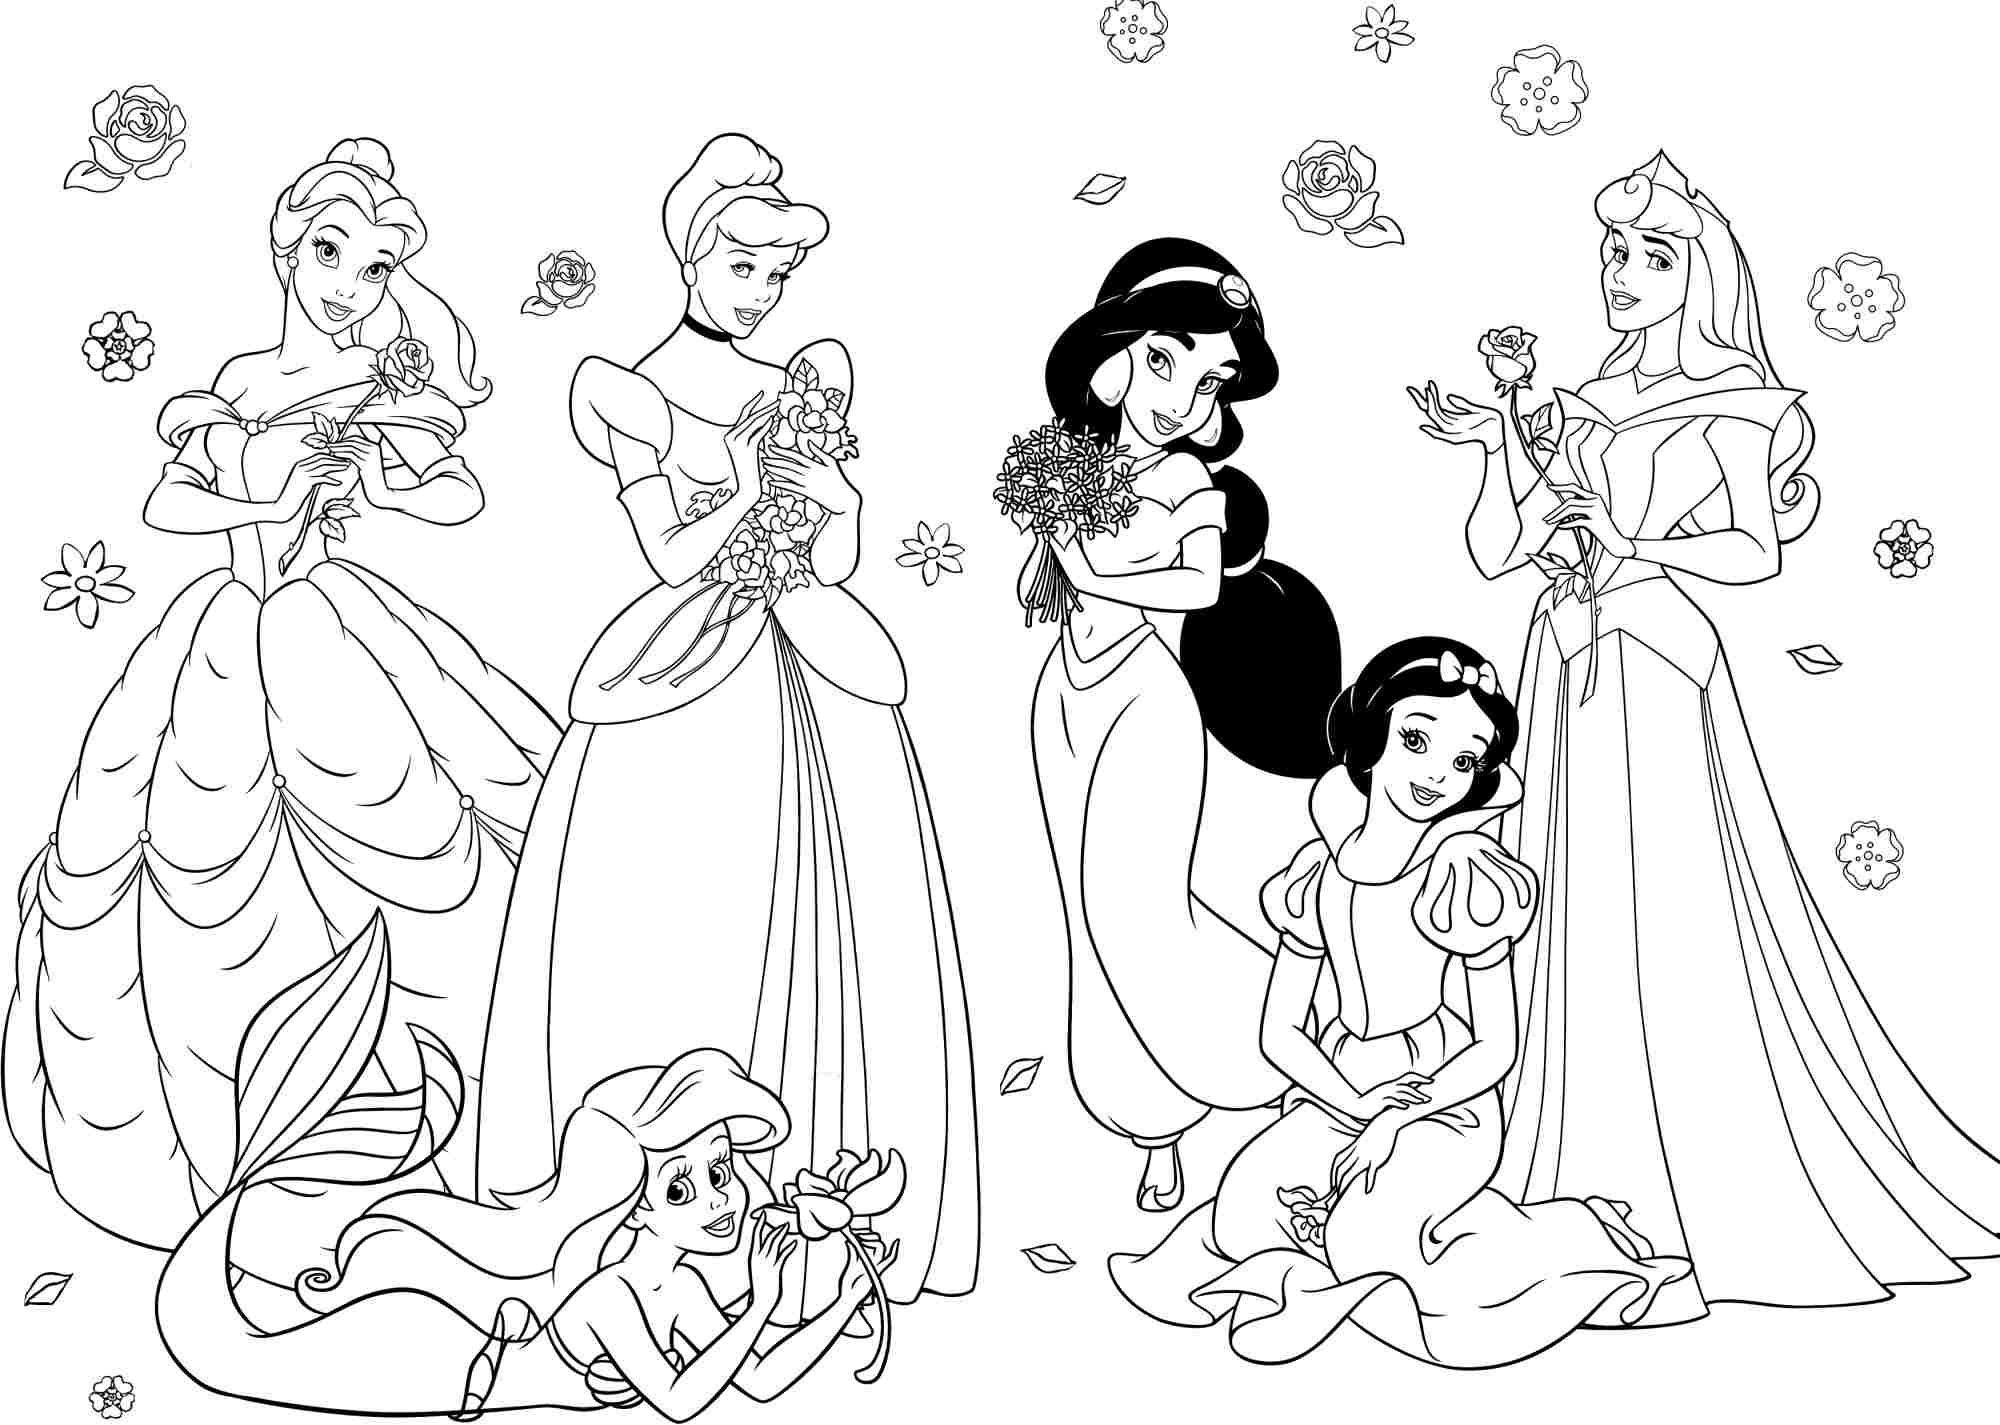 Disney coloring games for girls - Princess Coloring Pages For Girls Free Large Images